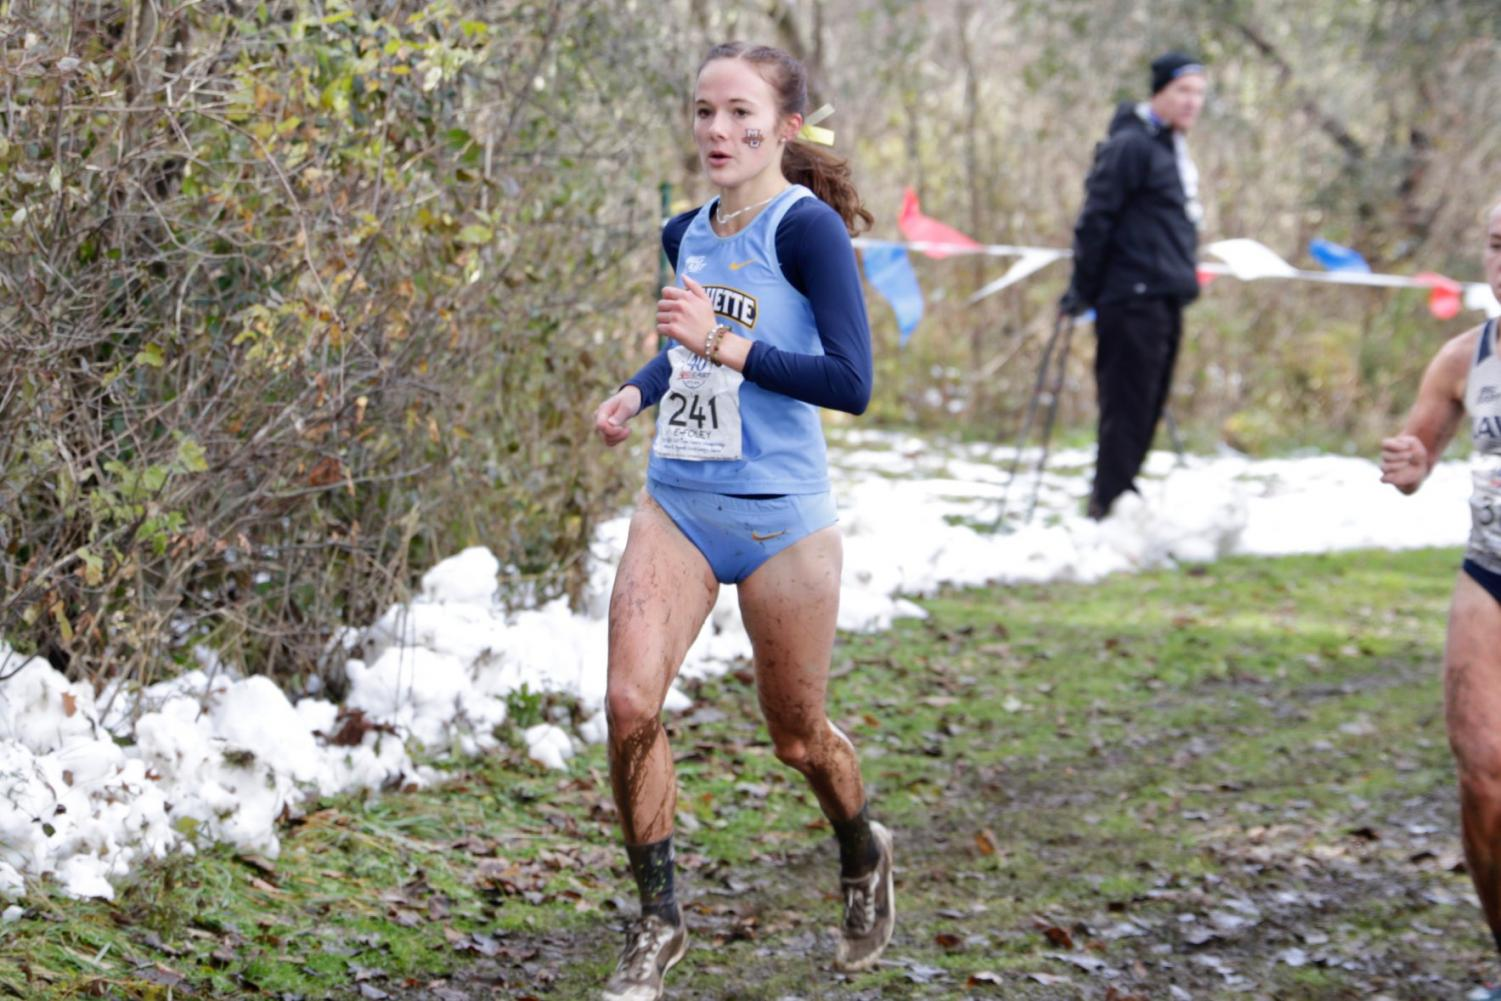 Emily Foley runs in the 2019 BIG EAST Championships on the University of Wisconsin-Parkside's campus. (Photo courtesy of Marquette Athletics)